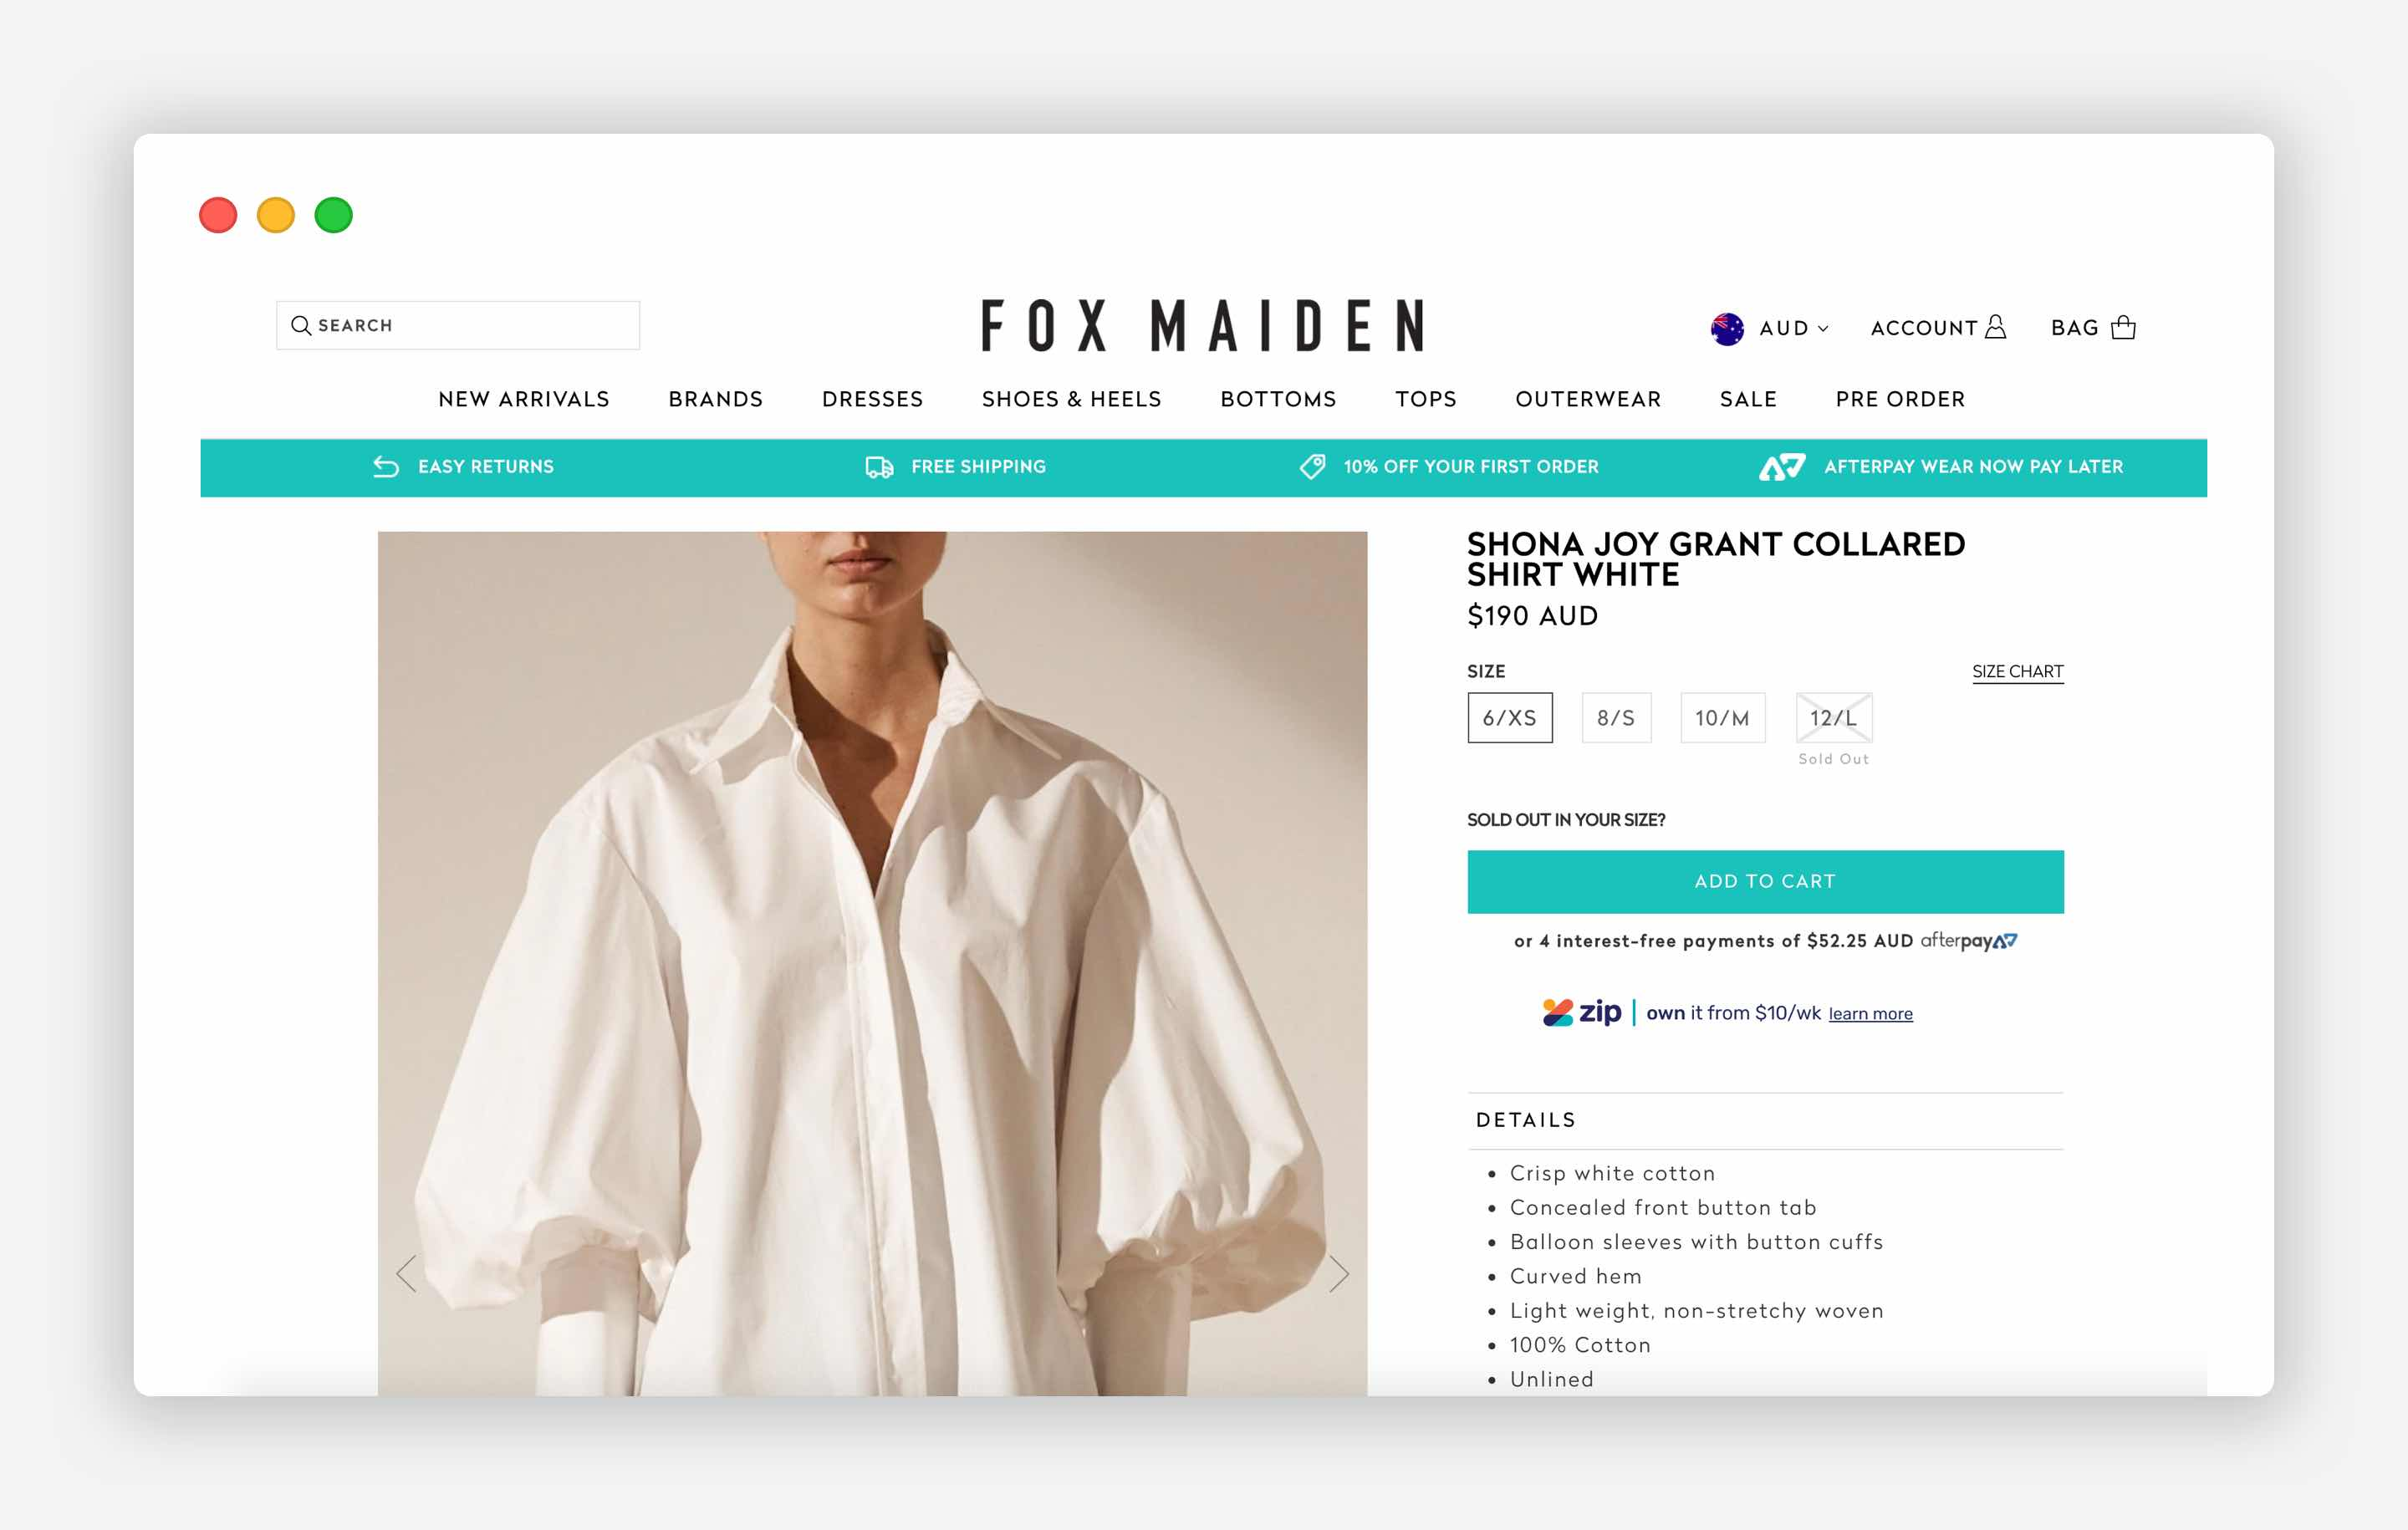 Returns and Refunds deatils on the product page. The Fox Maiden example